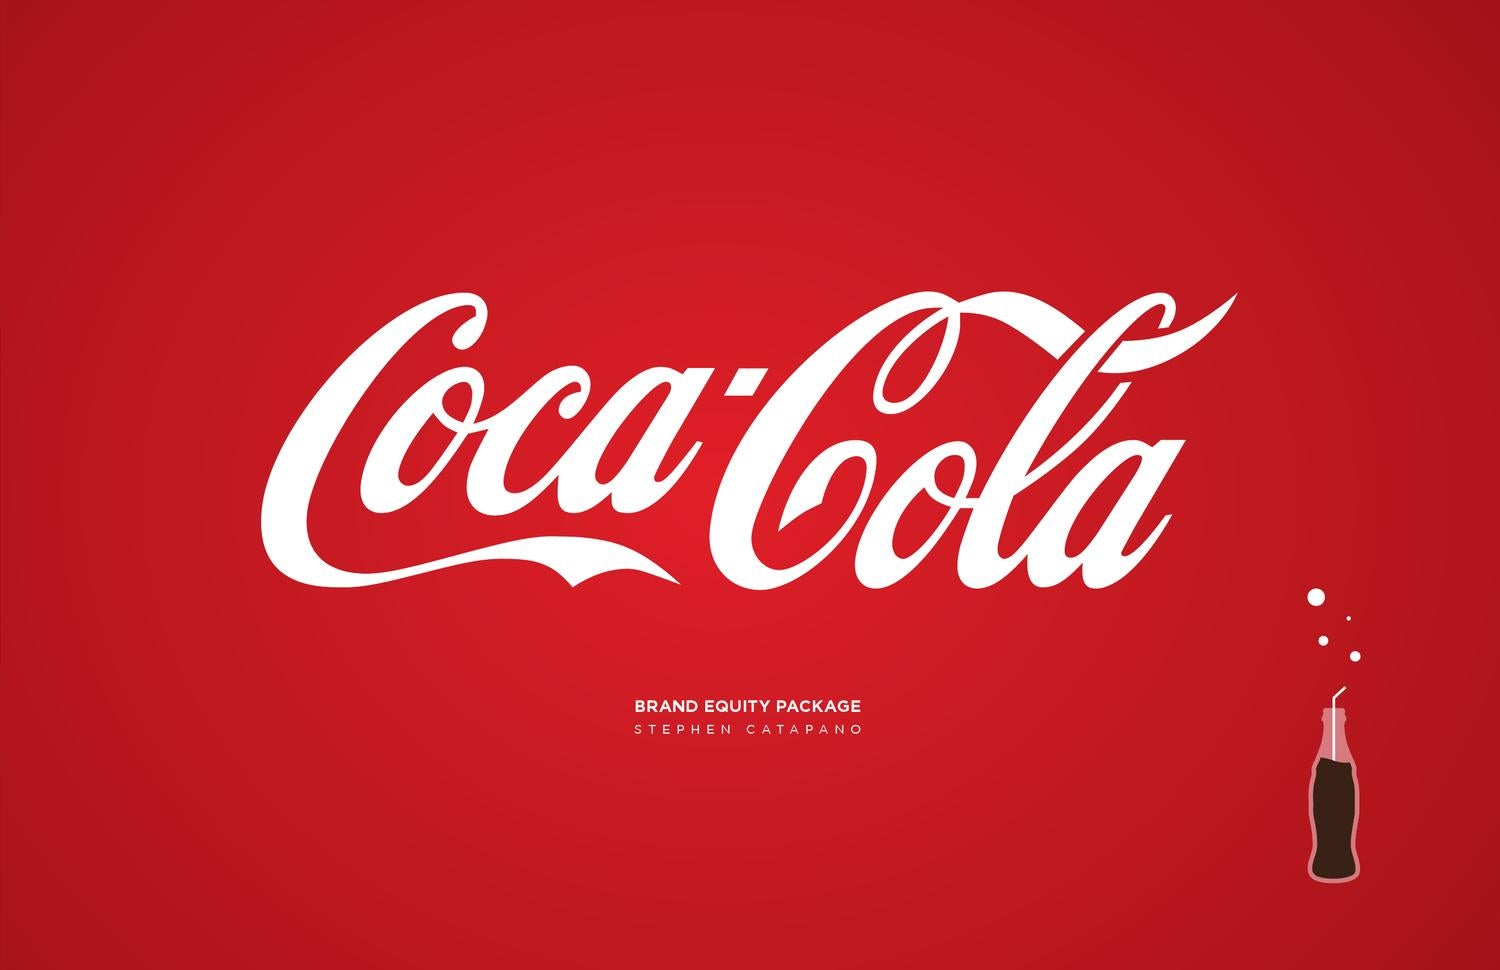 brand equity of coca cola The global value of the coca-cola brand rose from $4141 billion in 2006 to $8384 in 2015, according to millward brown, kantar and bloomberg.